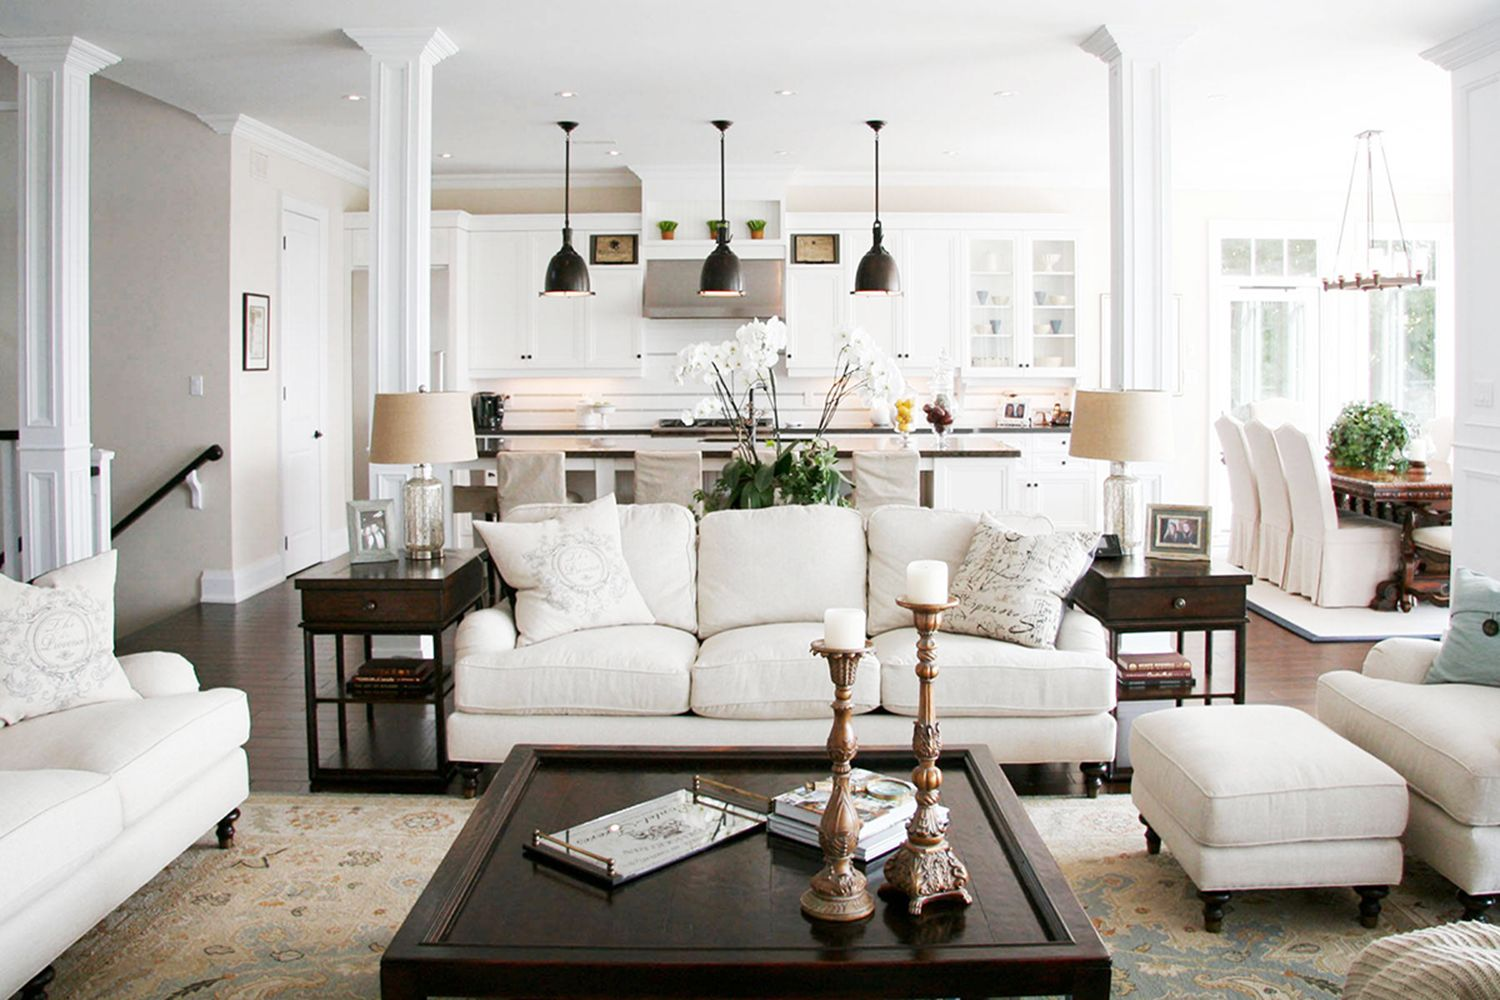 6 Design Tips For An Open Floor Plan Home Design Kathy Kuo Home Traditional Design Living Room Open Concept Living Room Traditional Living Room